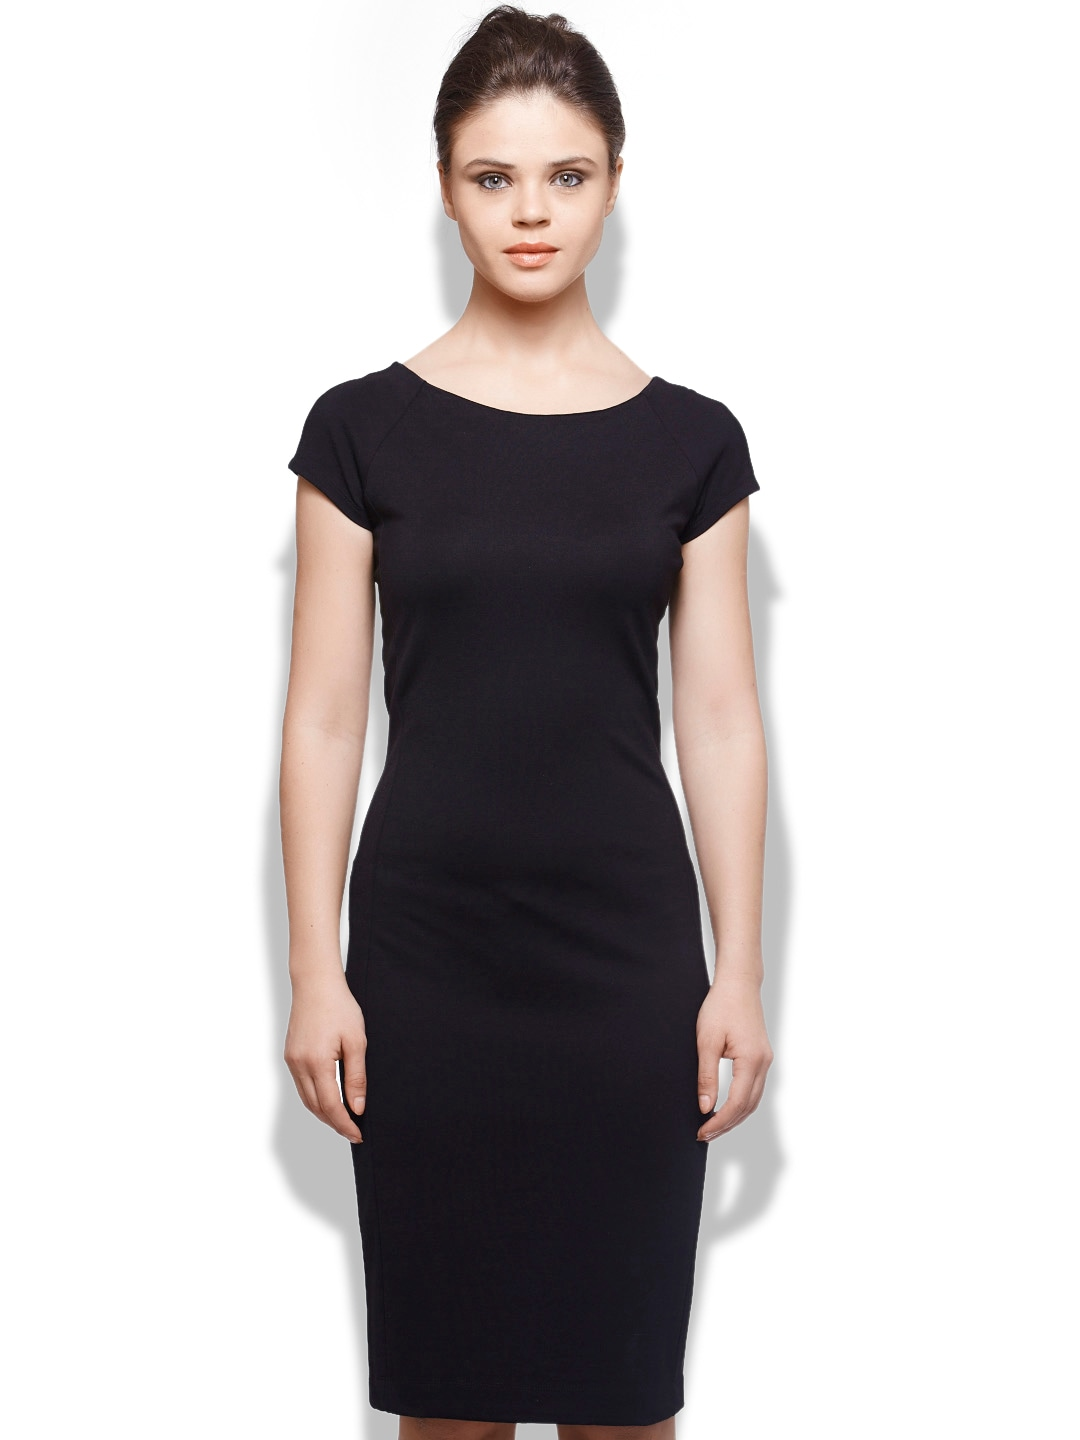 United Colors of Benetton Black Bodycon Dress